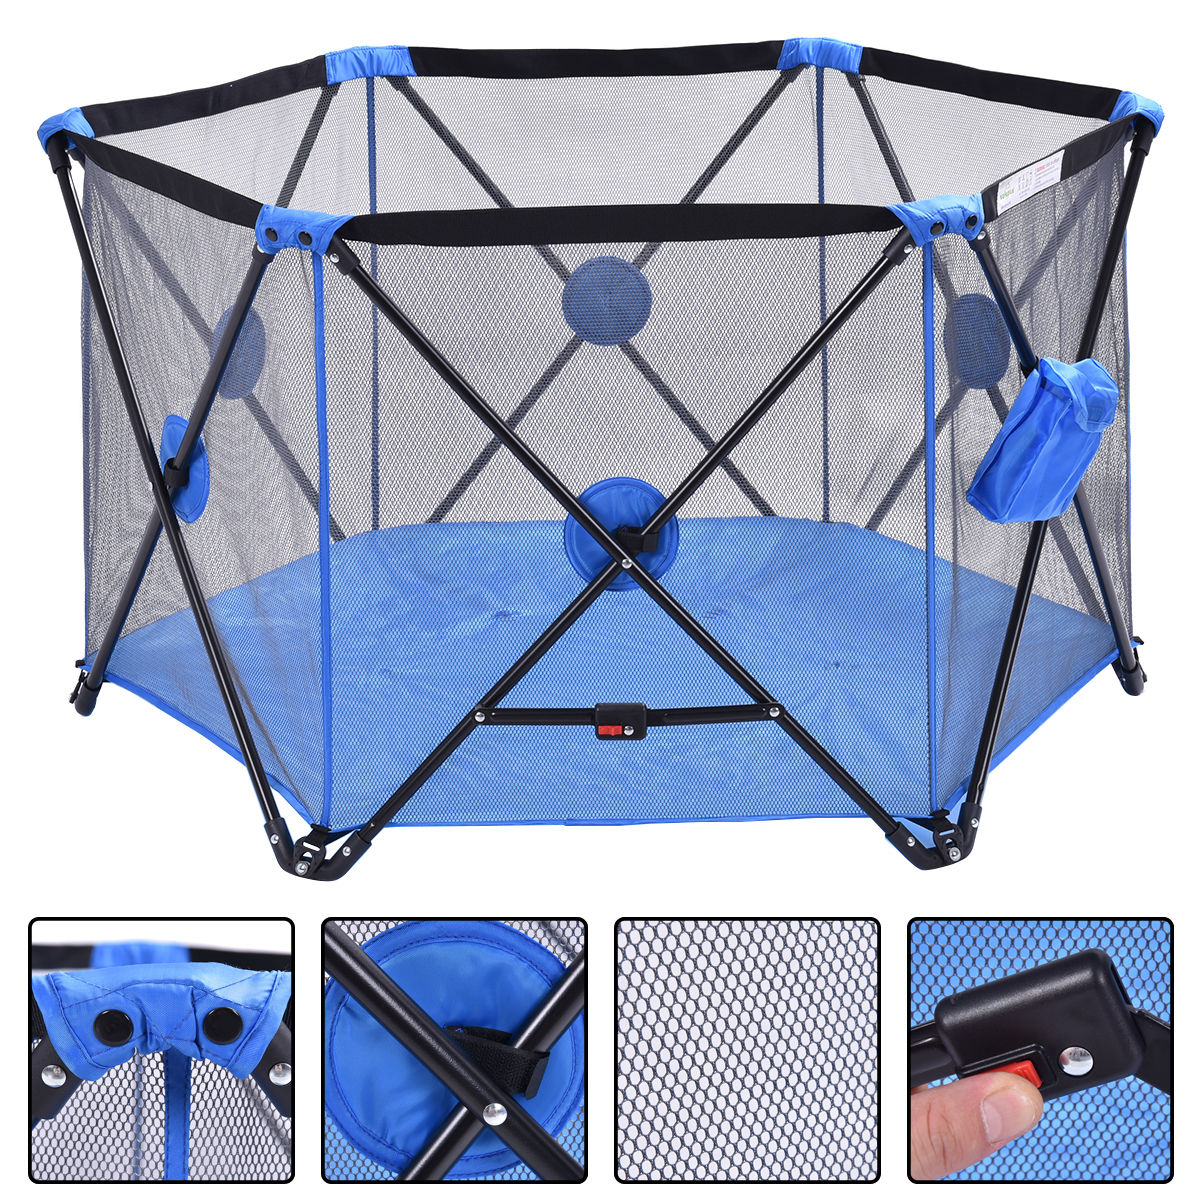 Costway Baby Play Pen Folding Infant Pop N' Play Portable Playard (Blue)